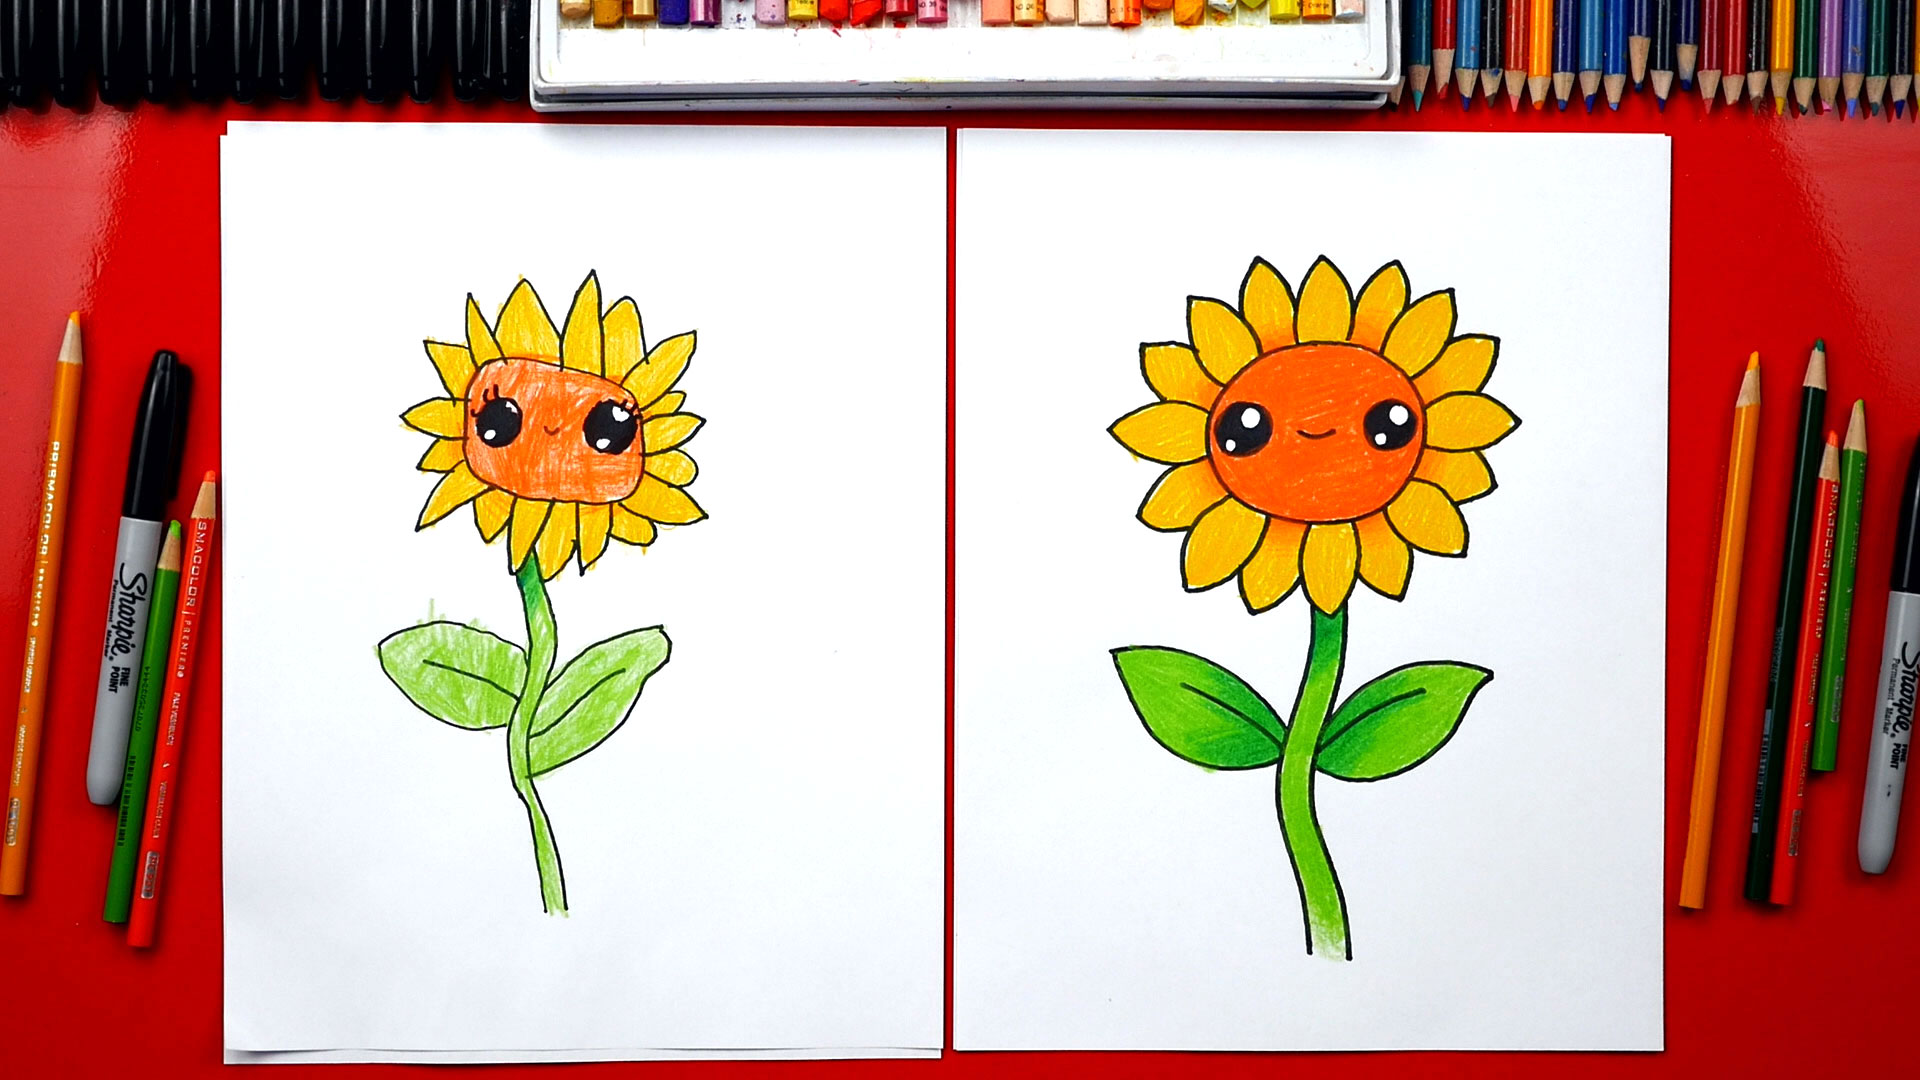 #kidsdrawing #easydrawings #drawinginspiration #howtodraw #fundrawing #freeprintables. How To Draw A Sunflower - Art For Kids Hub